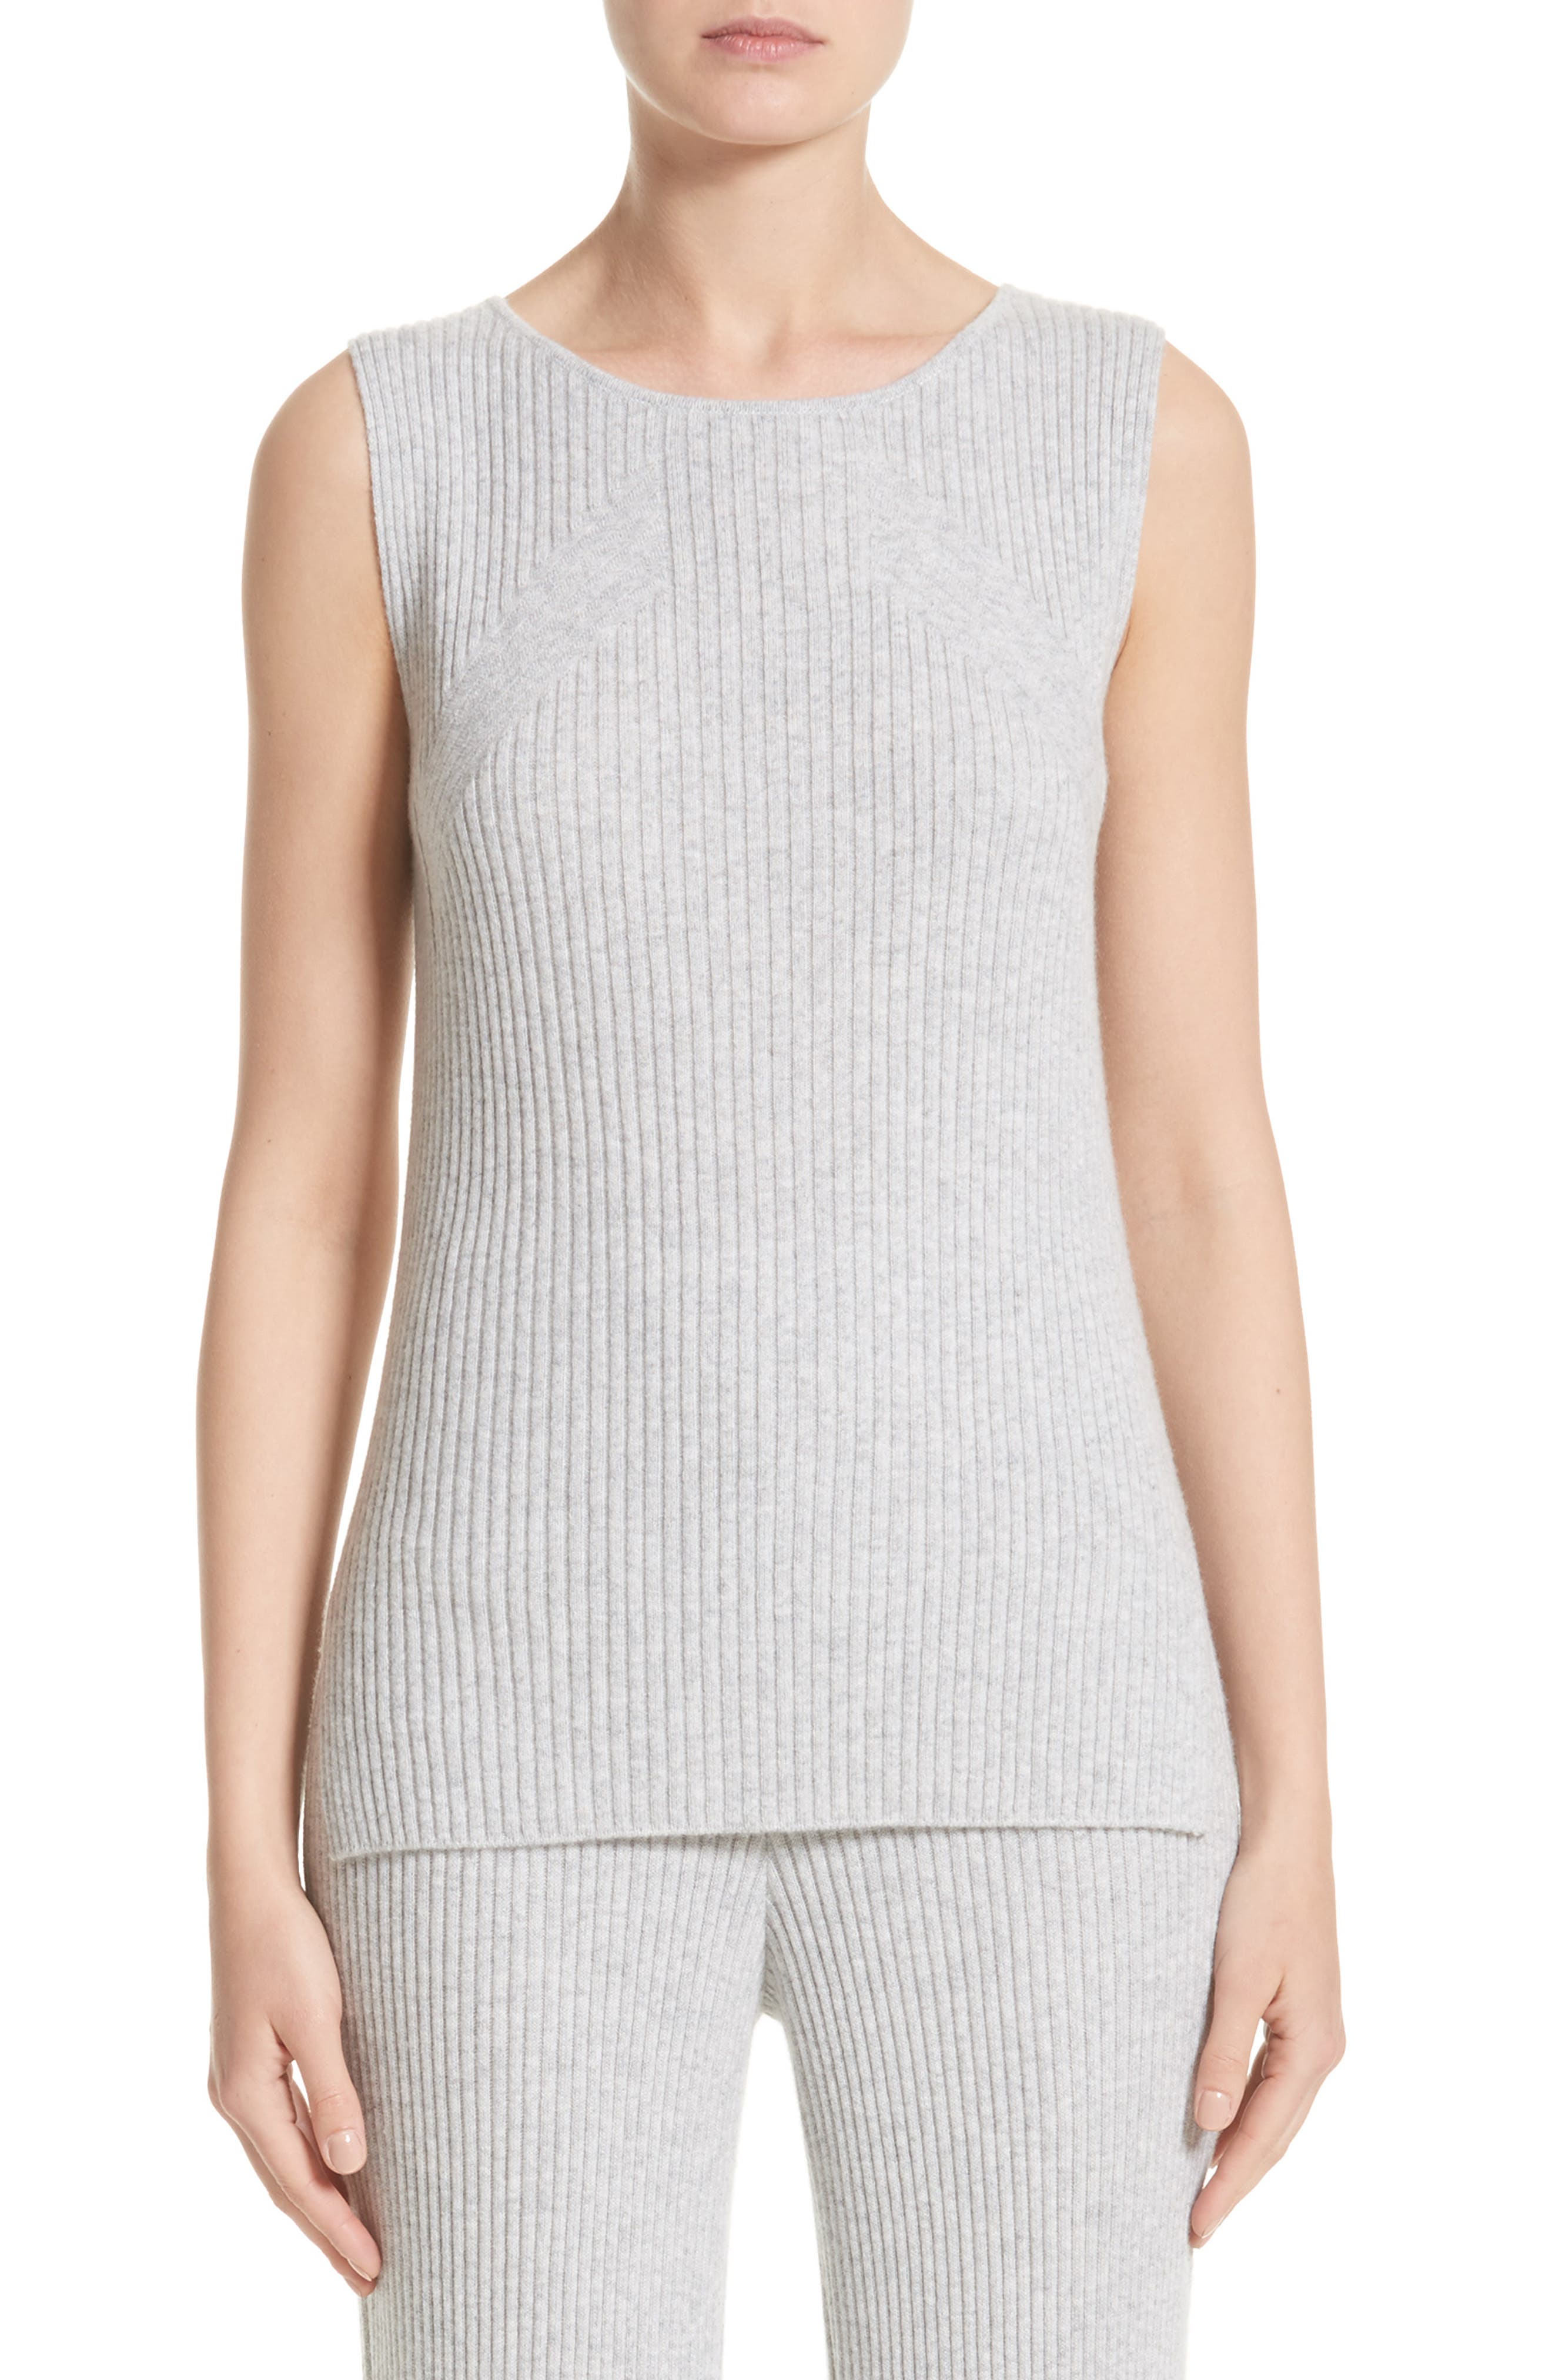 Main Image - St. John Collection Knit Cashmere Shell